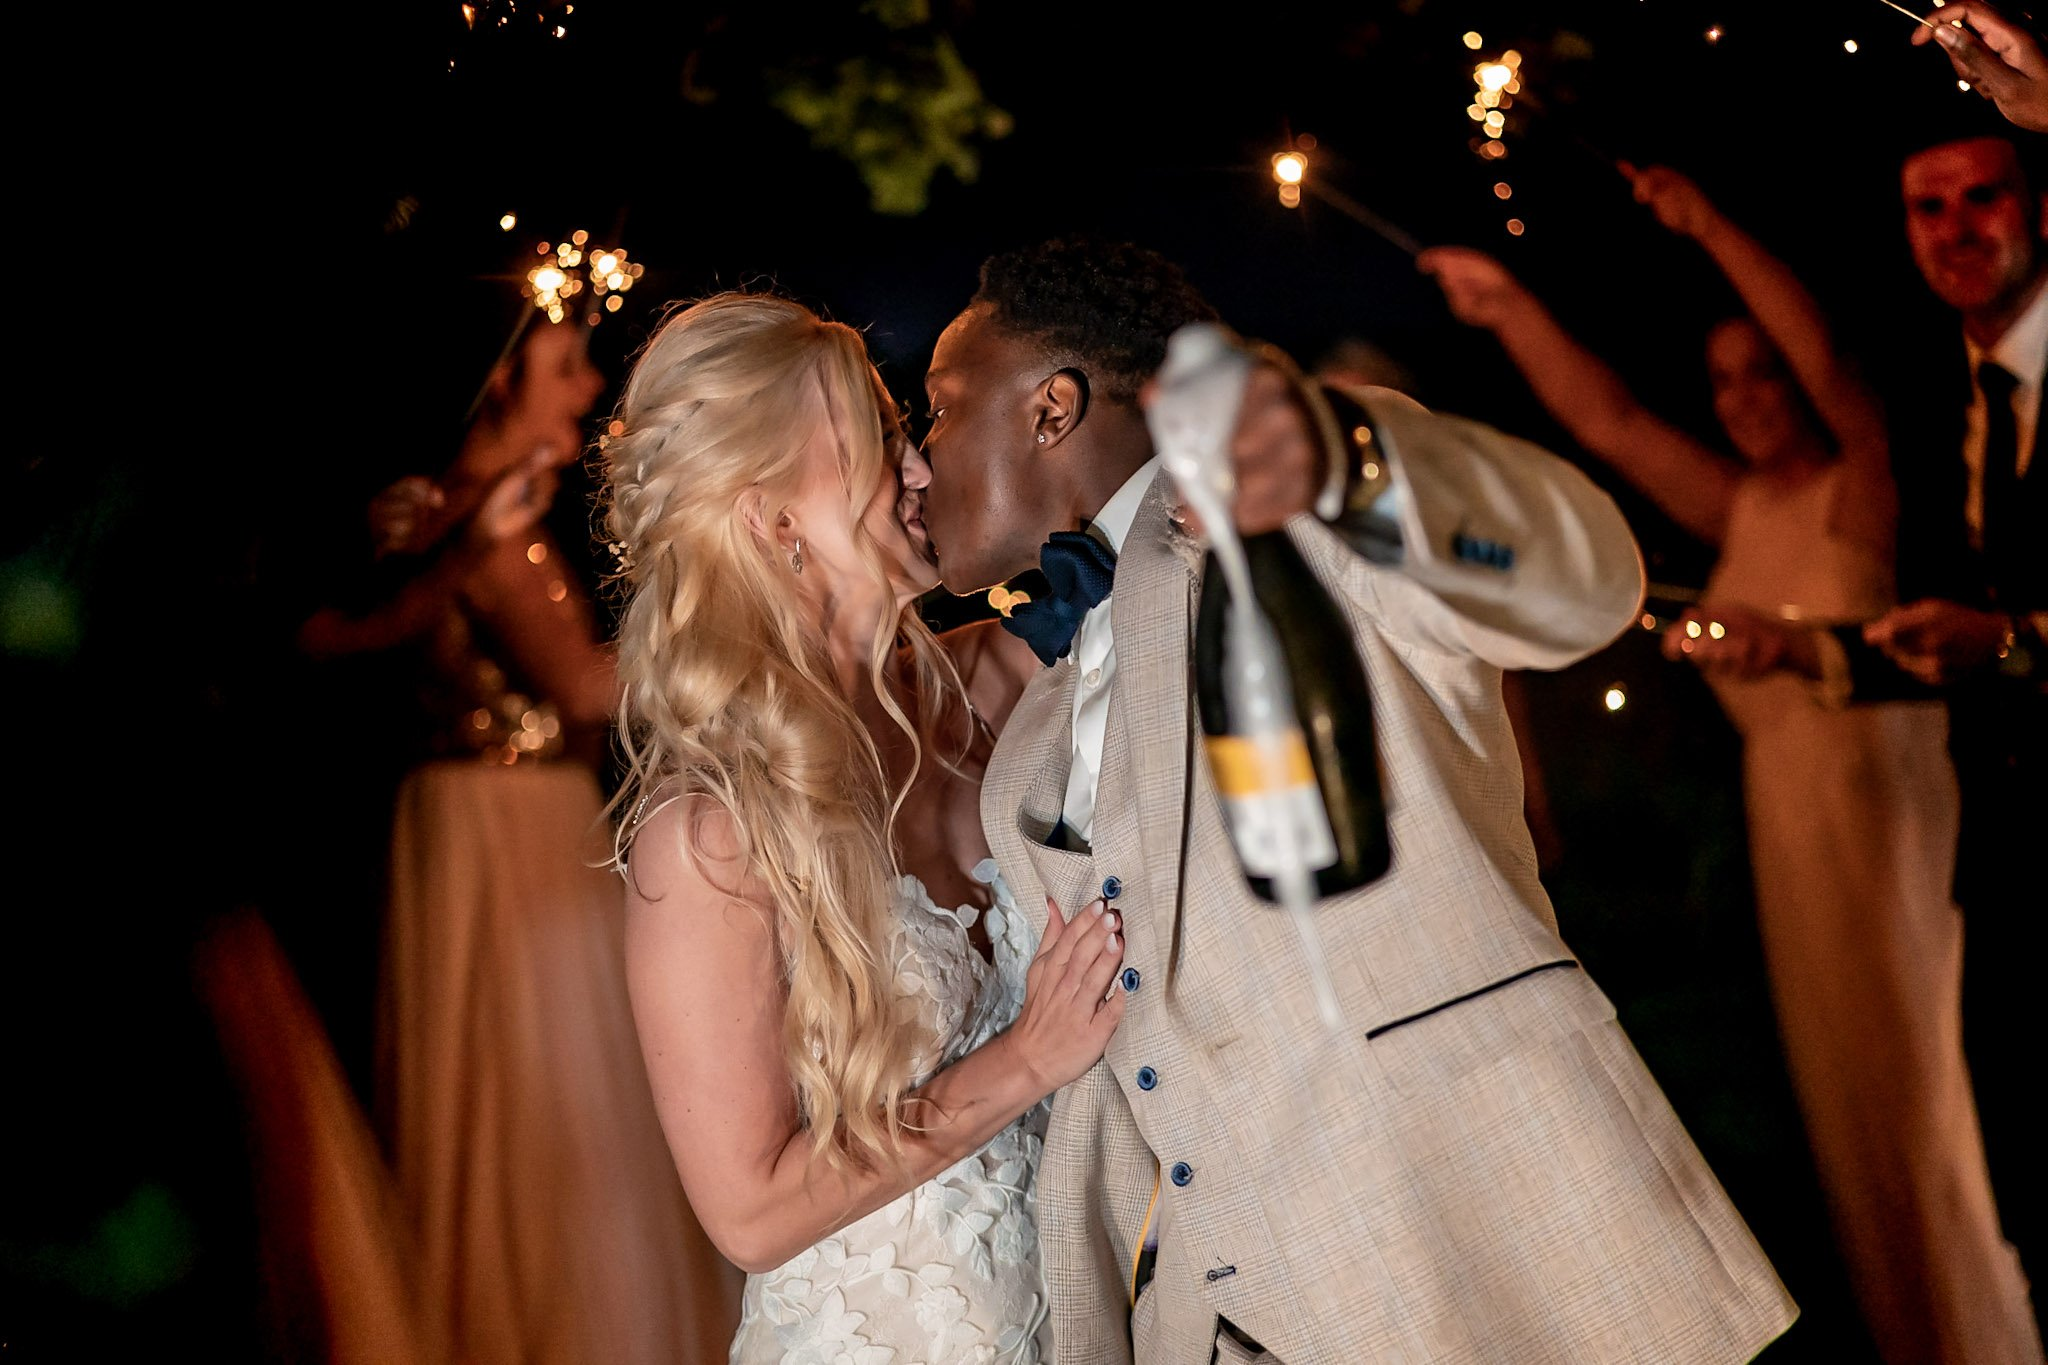 Your Favourite Frame YFFUK Mwasuku Norton Fields Atherstone bride kissing her groom while champagne spills out the bottle he is holding sparklers behind